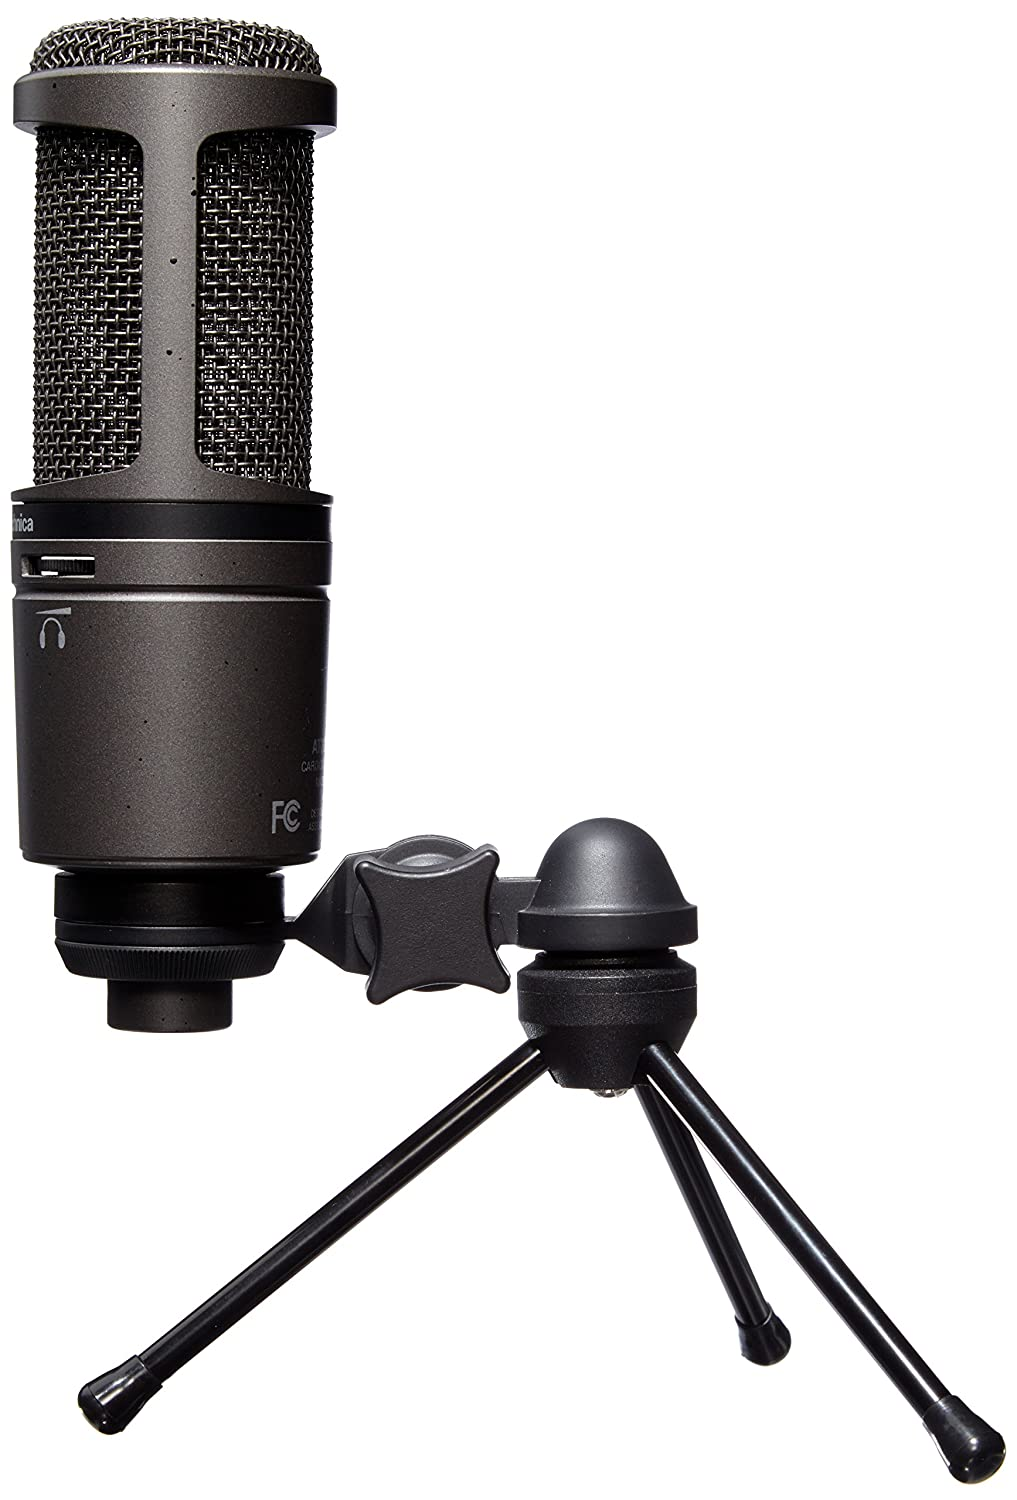 Audio-Technica AT2020+ USB microphone